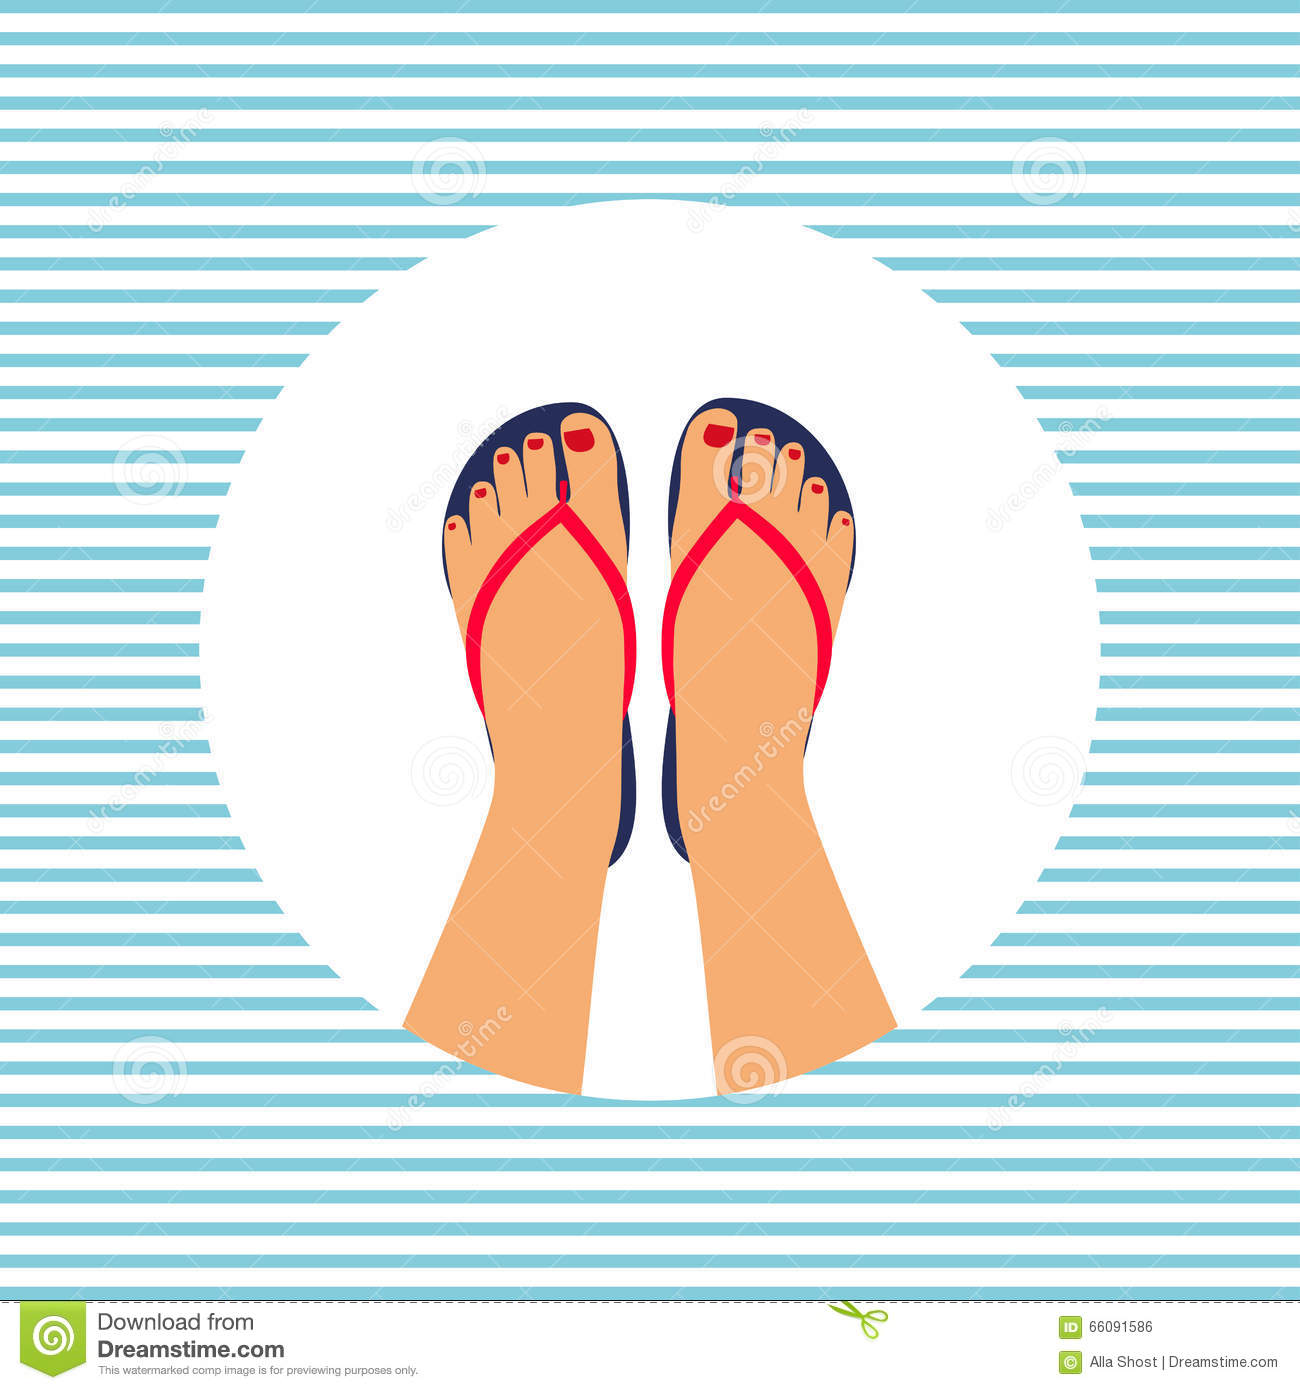 b20a4795e6178 Vector illustration female feet with a pedicure in the summer flip-flops.  summer - concept background. More similar stock illustrations